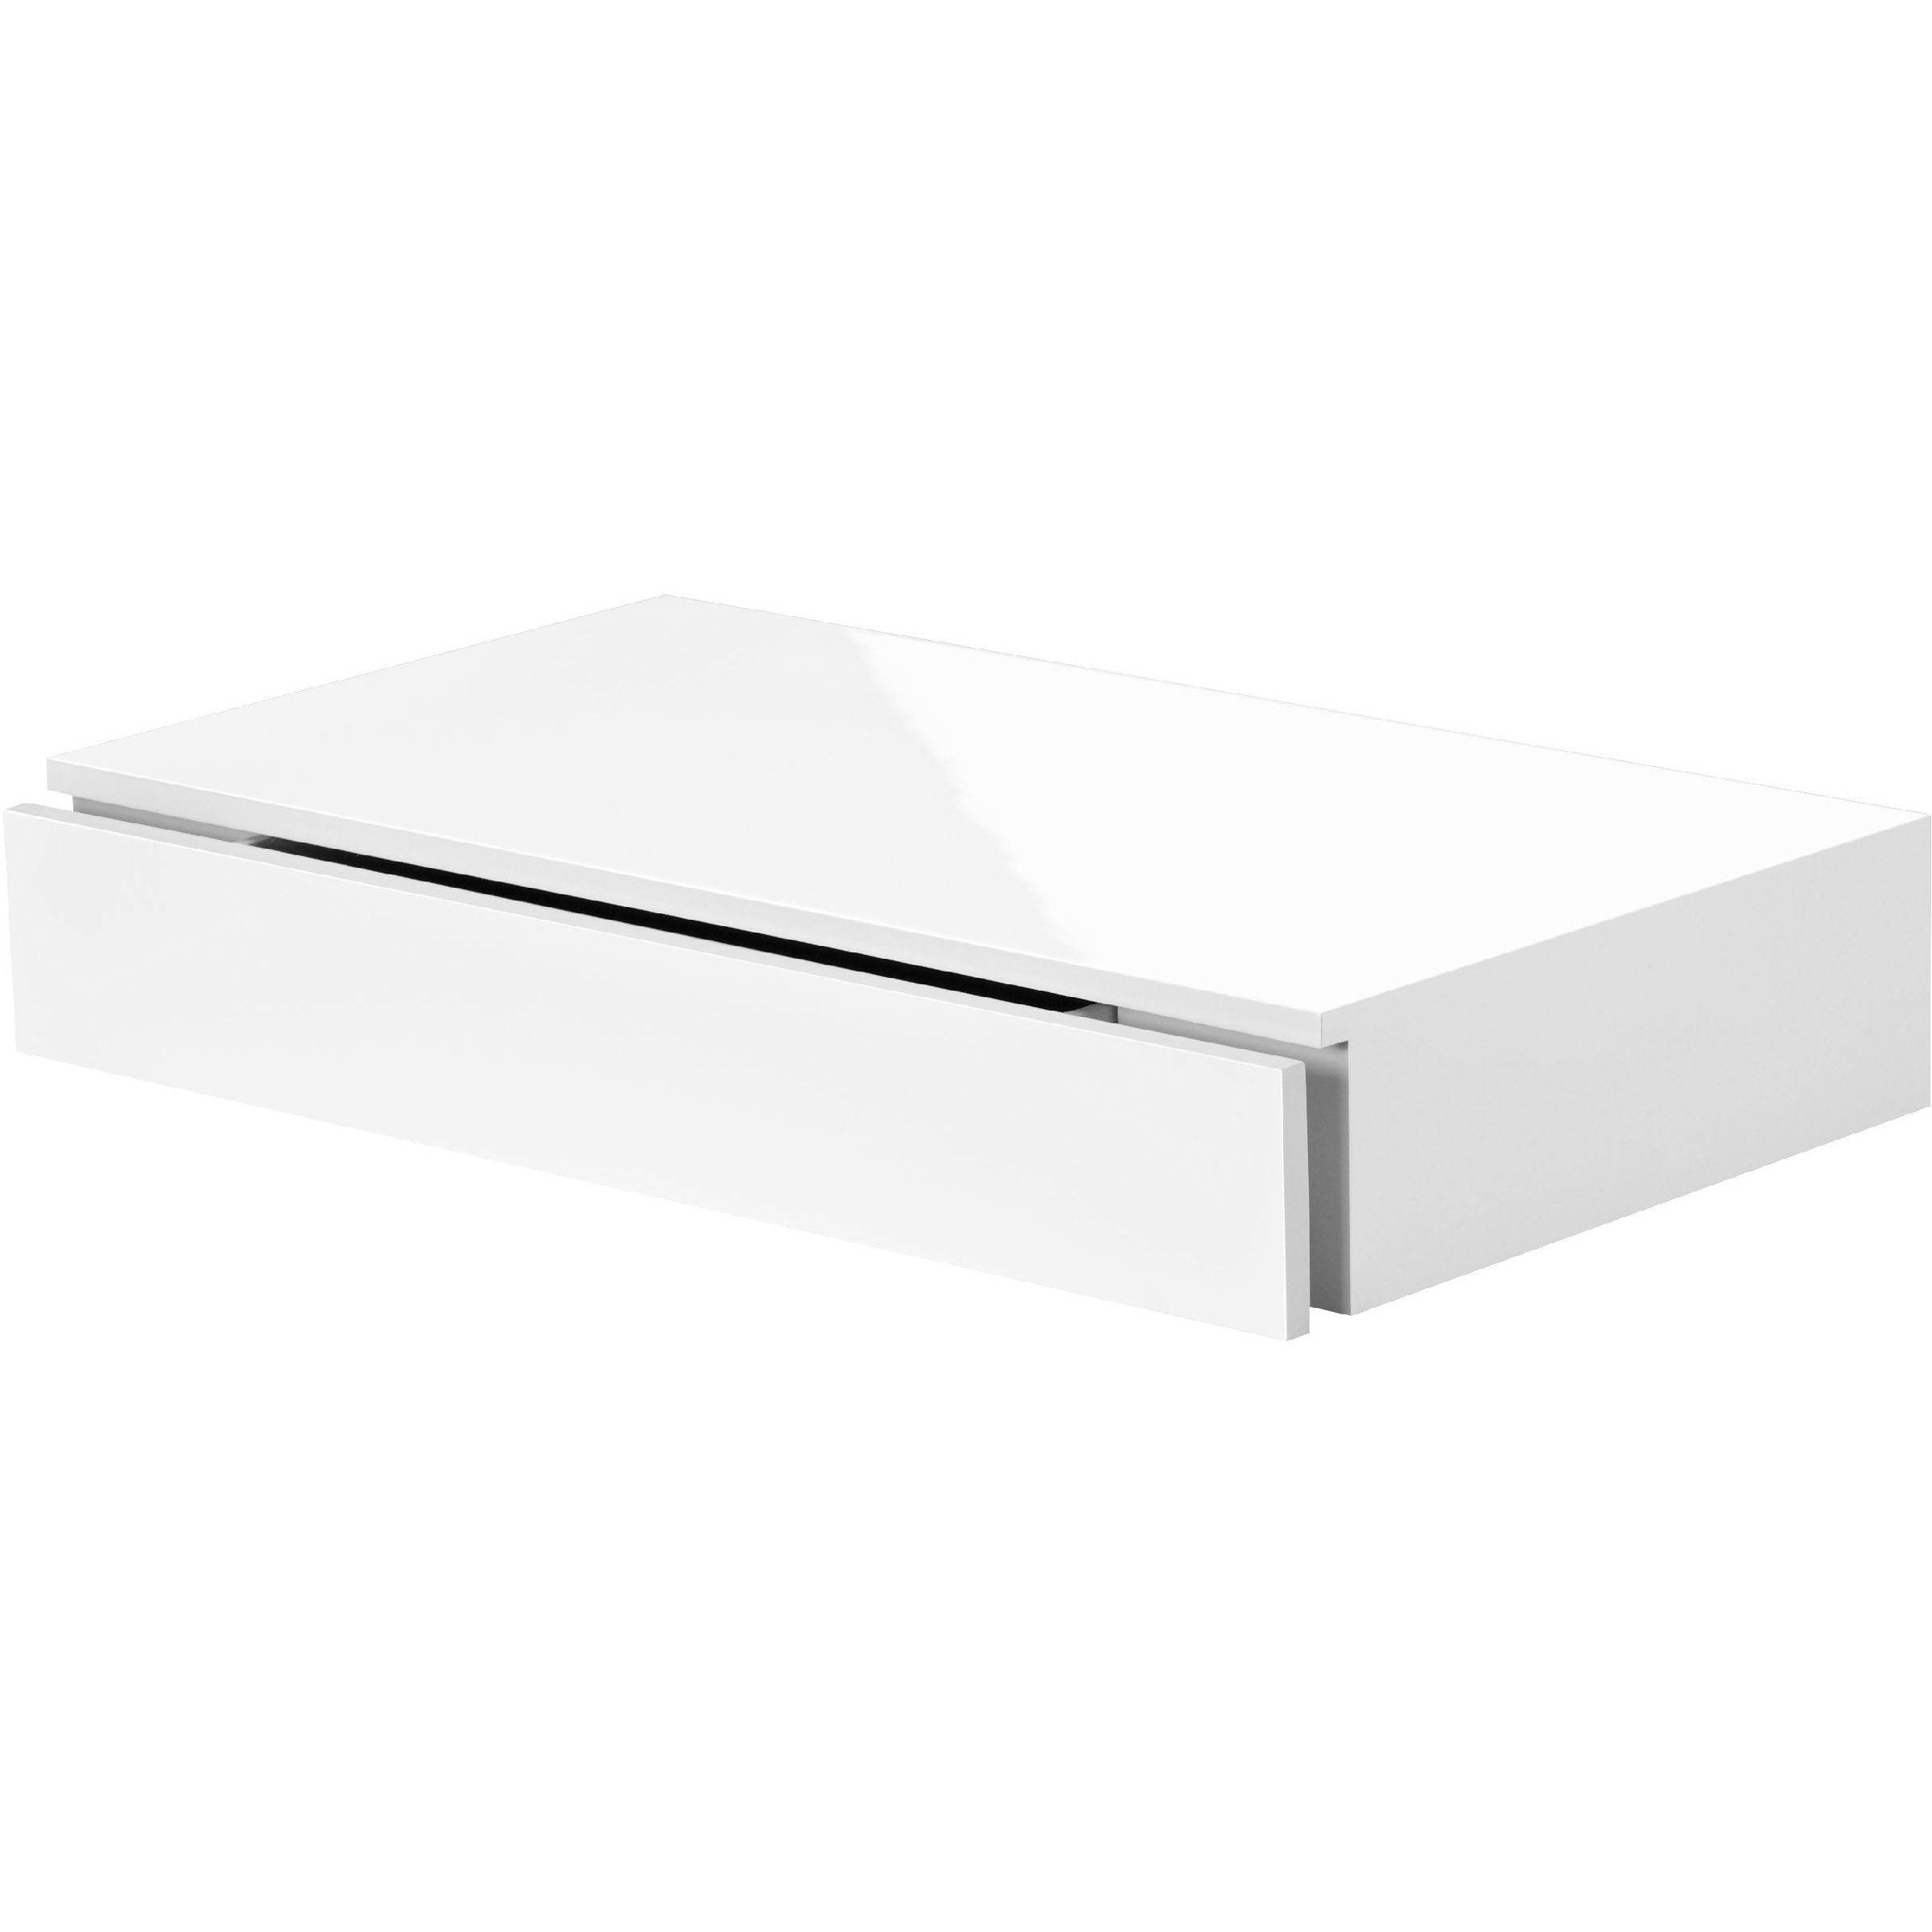 floating shelf with drawer mastershelf cassetto wei hochglanz high gloss black white tier wall mitre pool pump corner nightstand box decor shelving perth glass shelves for